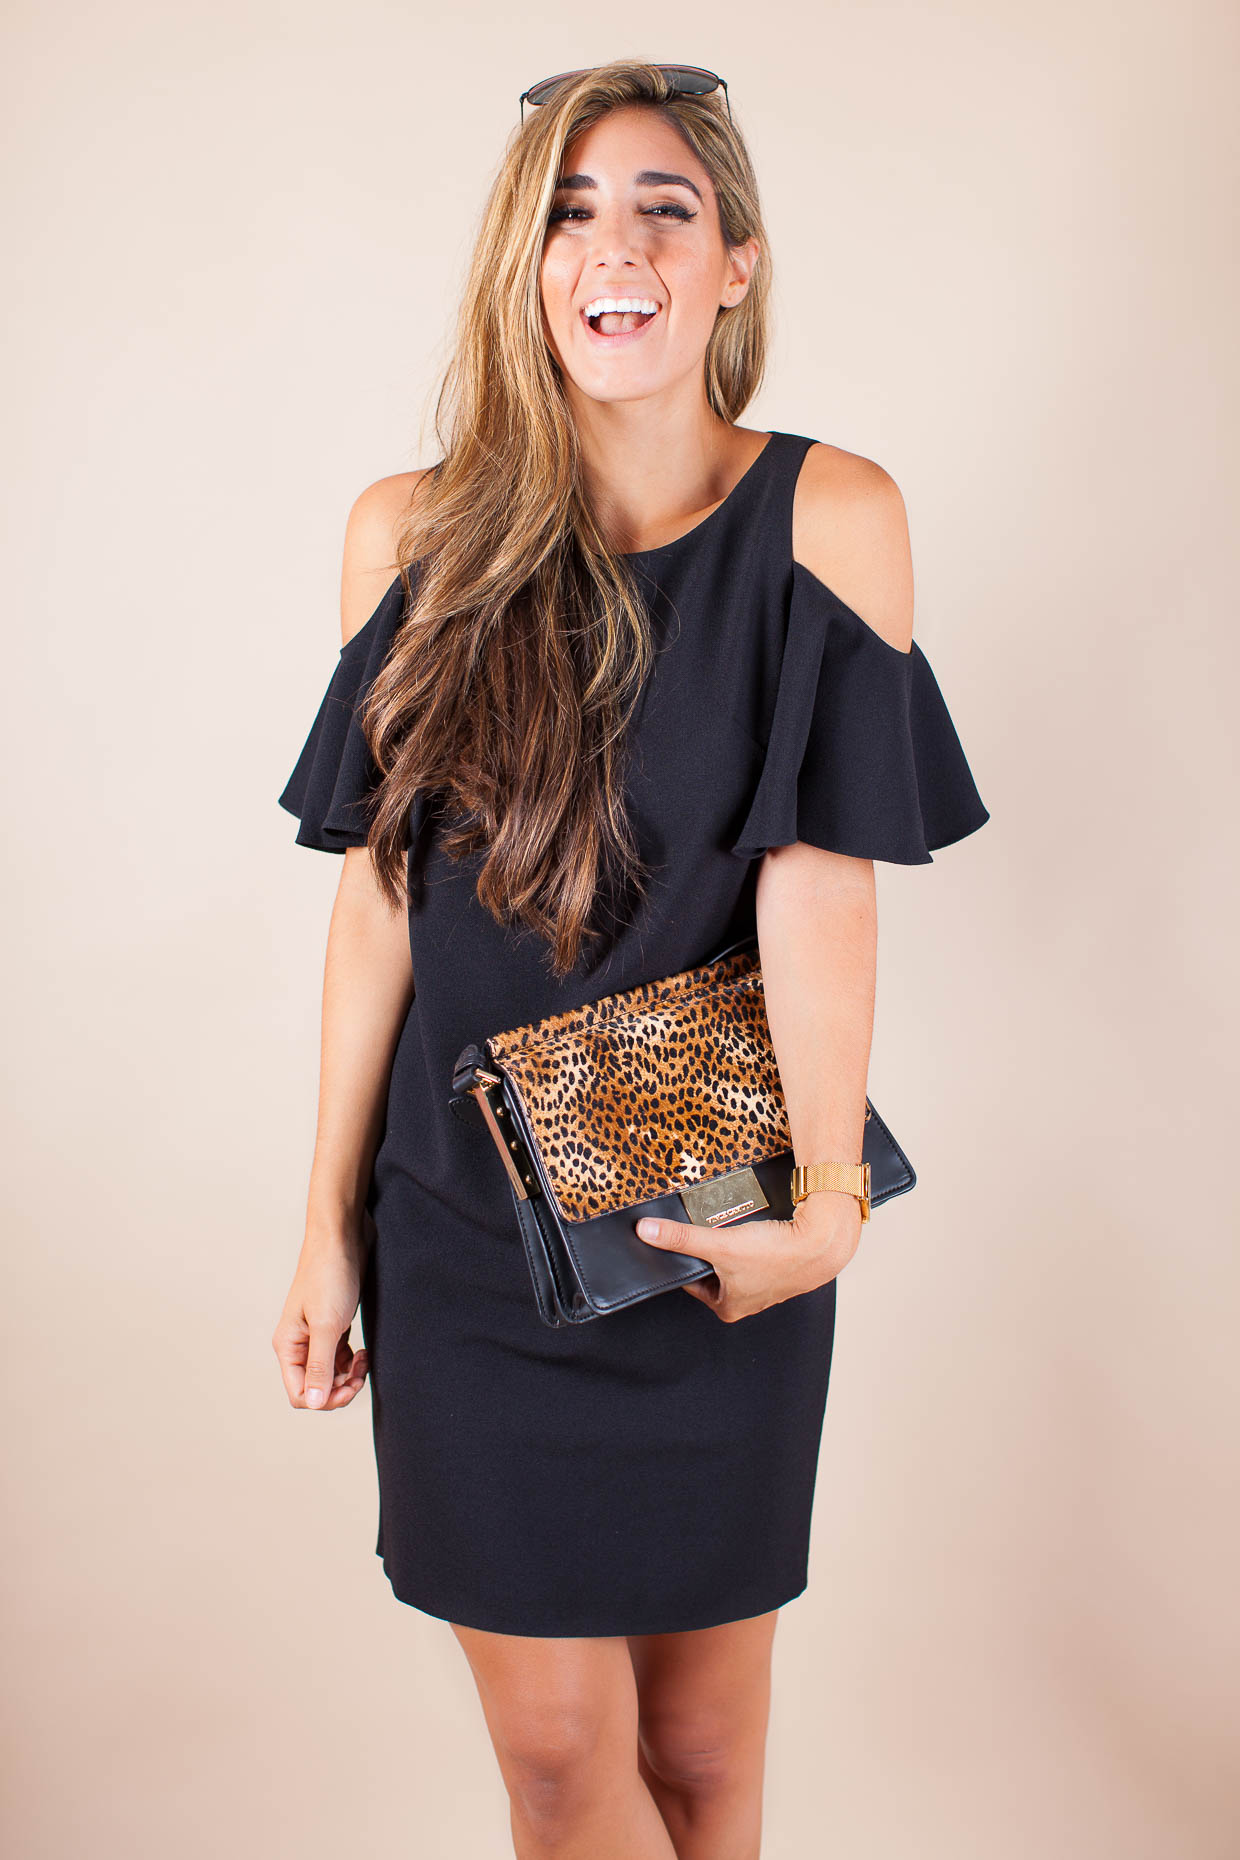 The Darling Detail is wearing a Chelsea28 'Peek-A-Boo' Cold Shoulder Shift Dress, Ray-Ban 'Original Aviator' Sunglasses, a LARSSON & JENNINGS 'Lugano' Mesh Strap Watch, and is holding a Vince Camuto 'Abril' Leather Shoulder Bag.